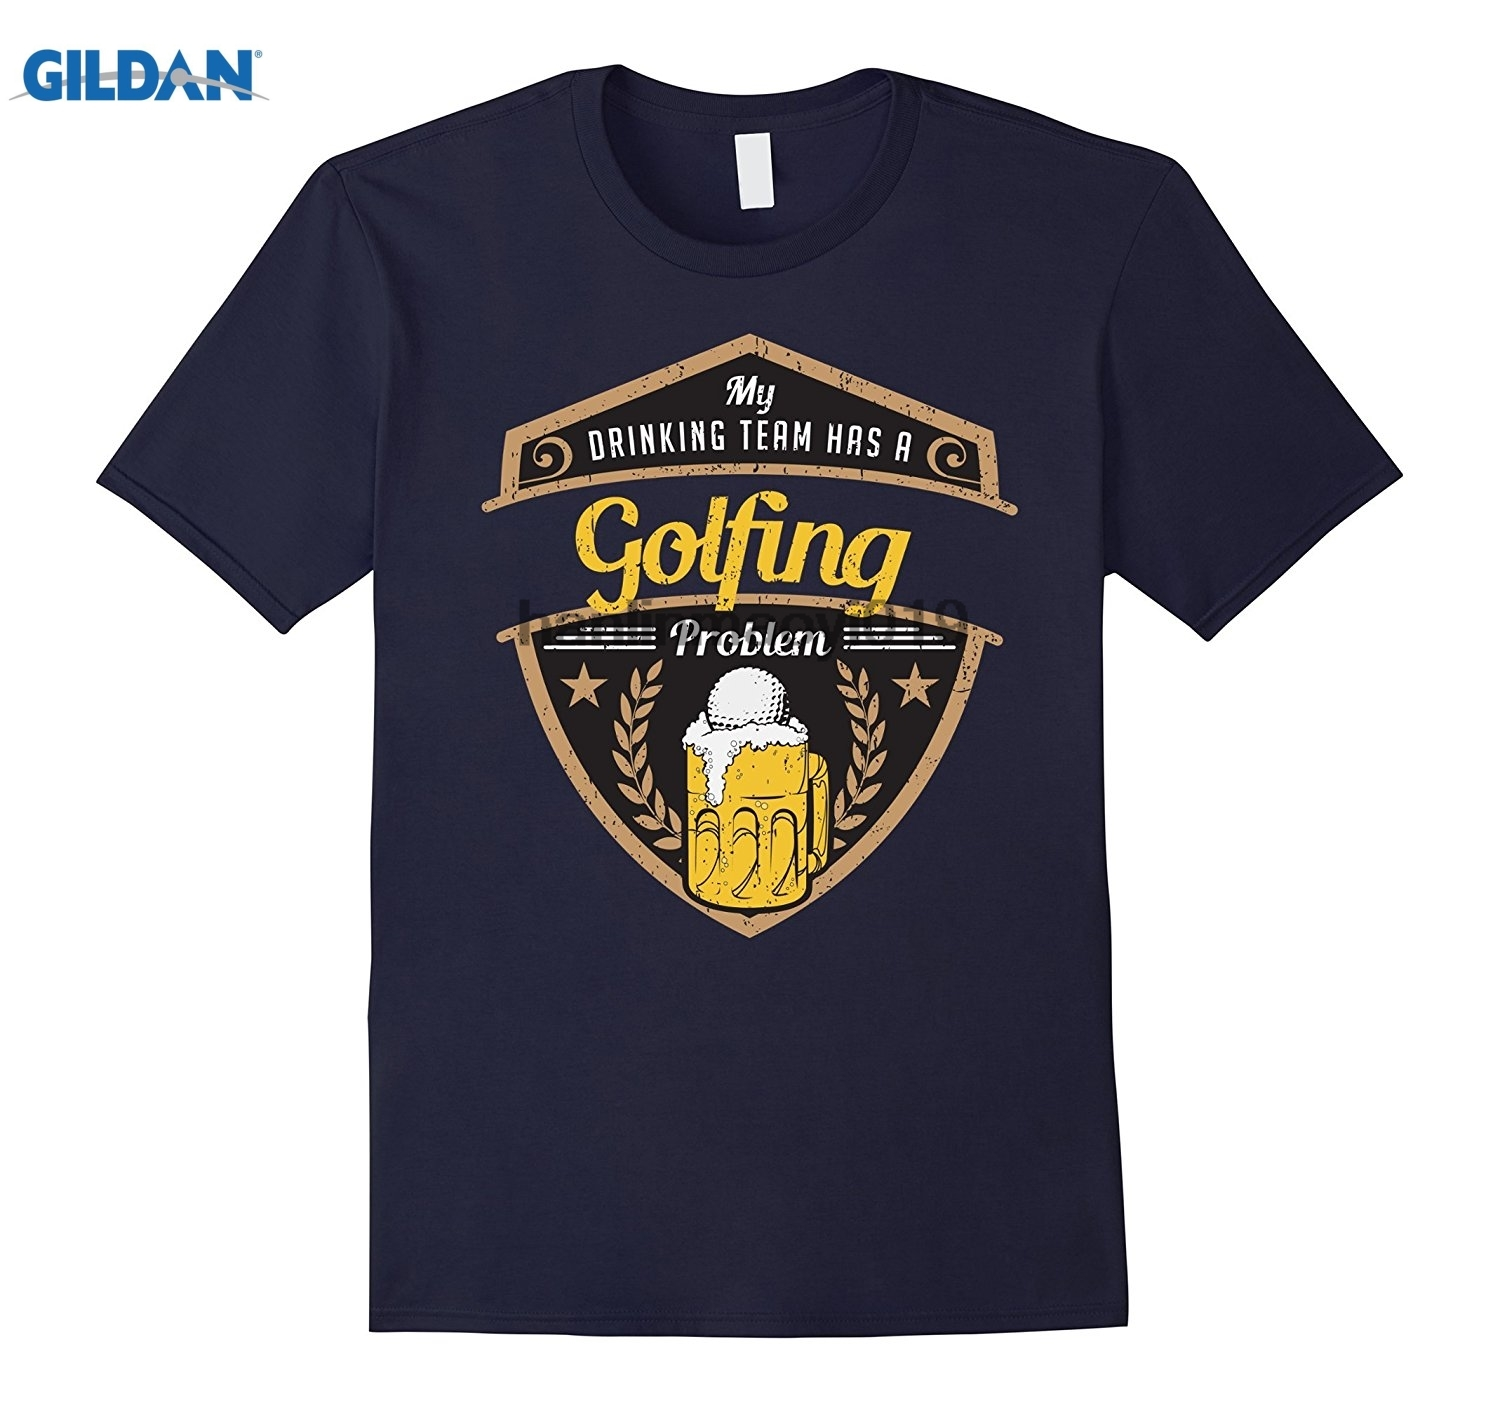 GILDAN My Drinking Team has a Golfing Problem Beer T-shirt